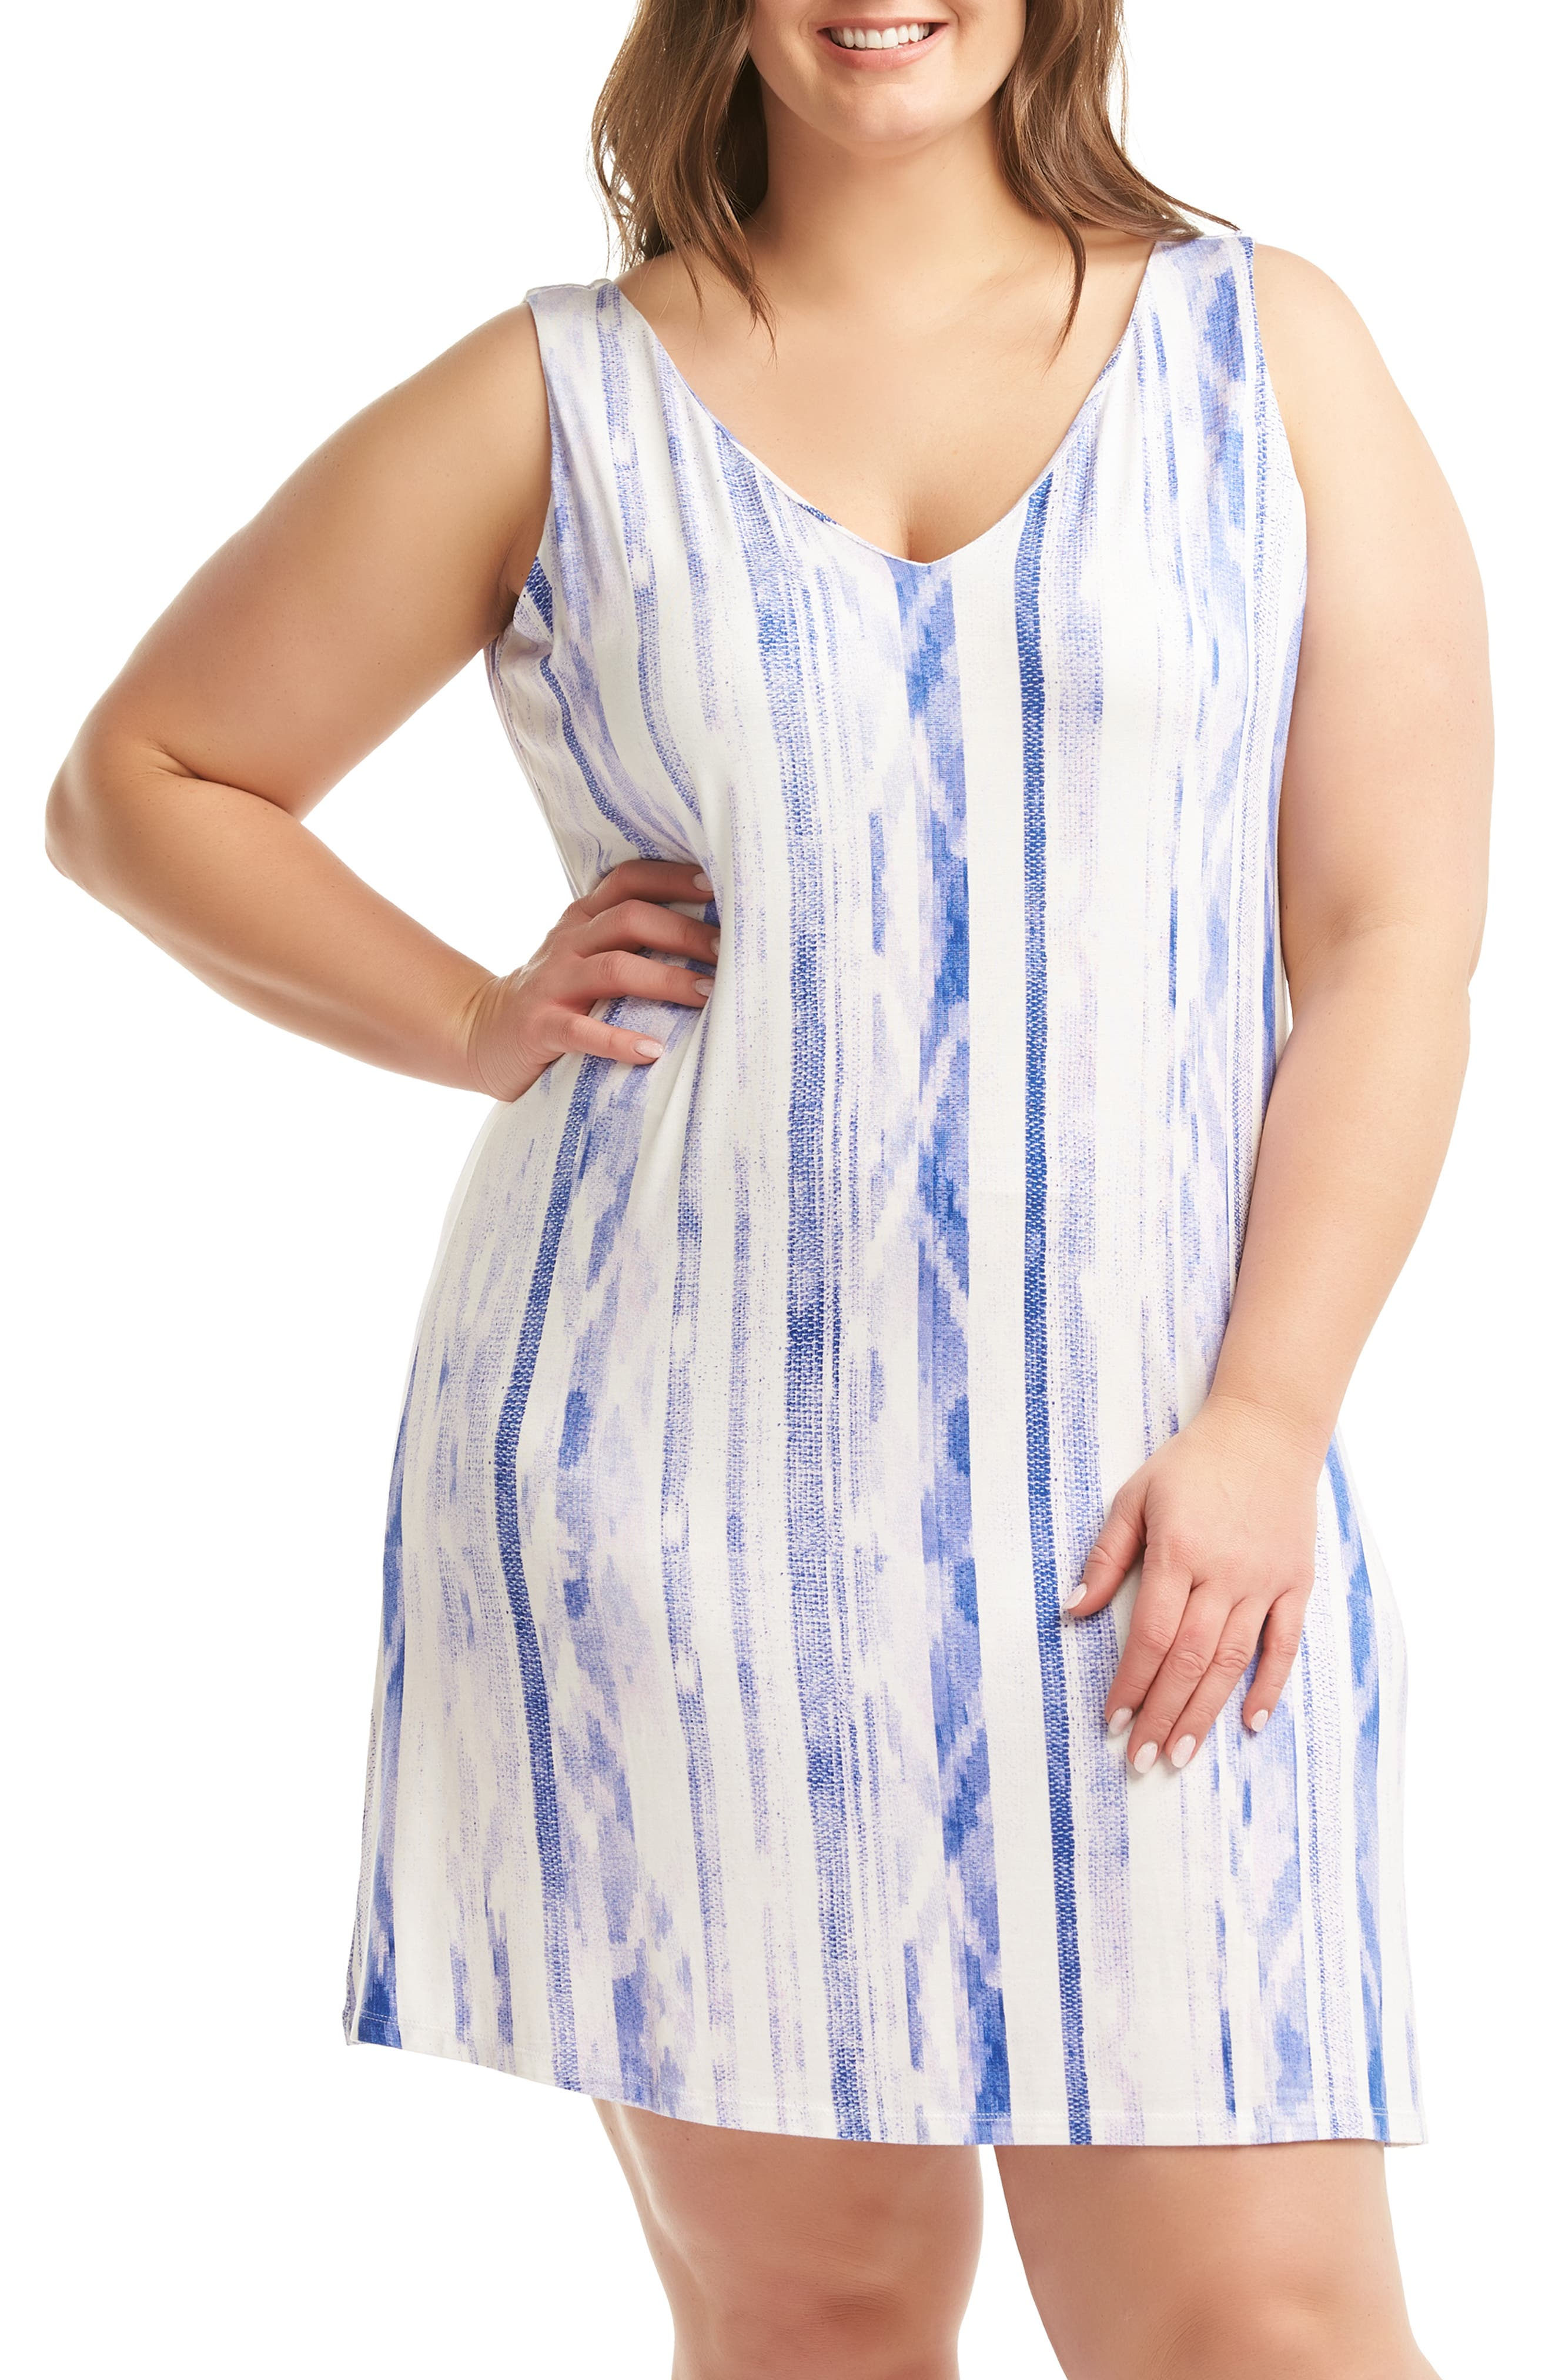 Plus Size Lemon Tart Charlie Dress, White